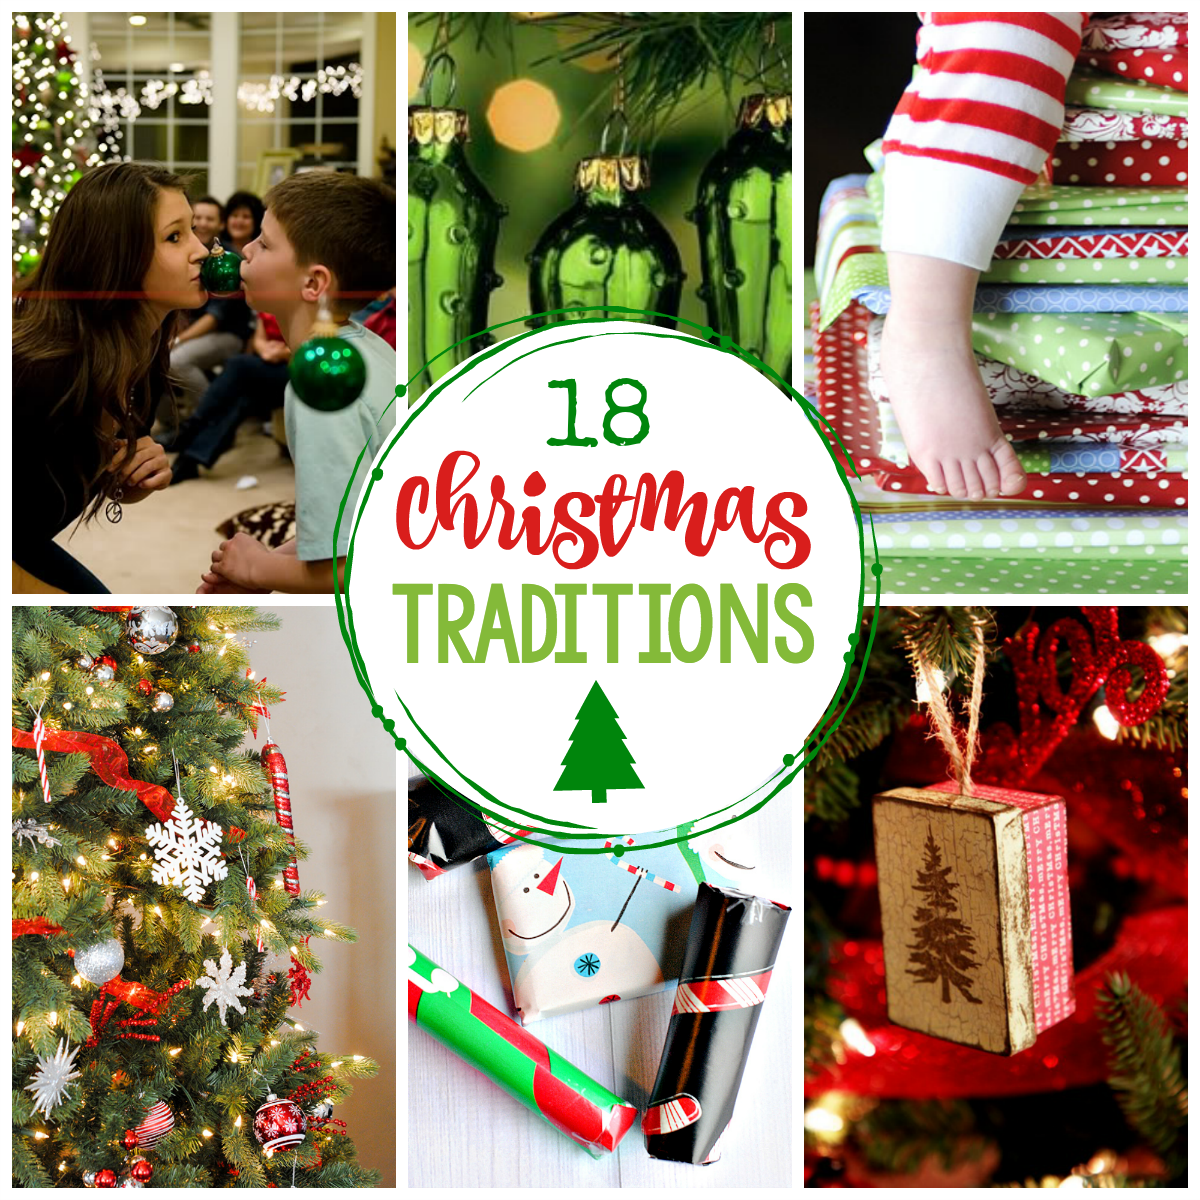 25 Fun Christmas Traditions to Start This Year - Fun-Squared 0465ac8fc